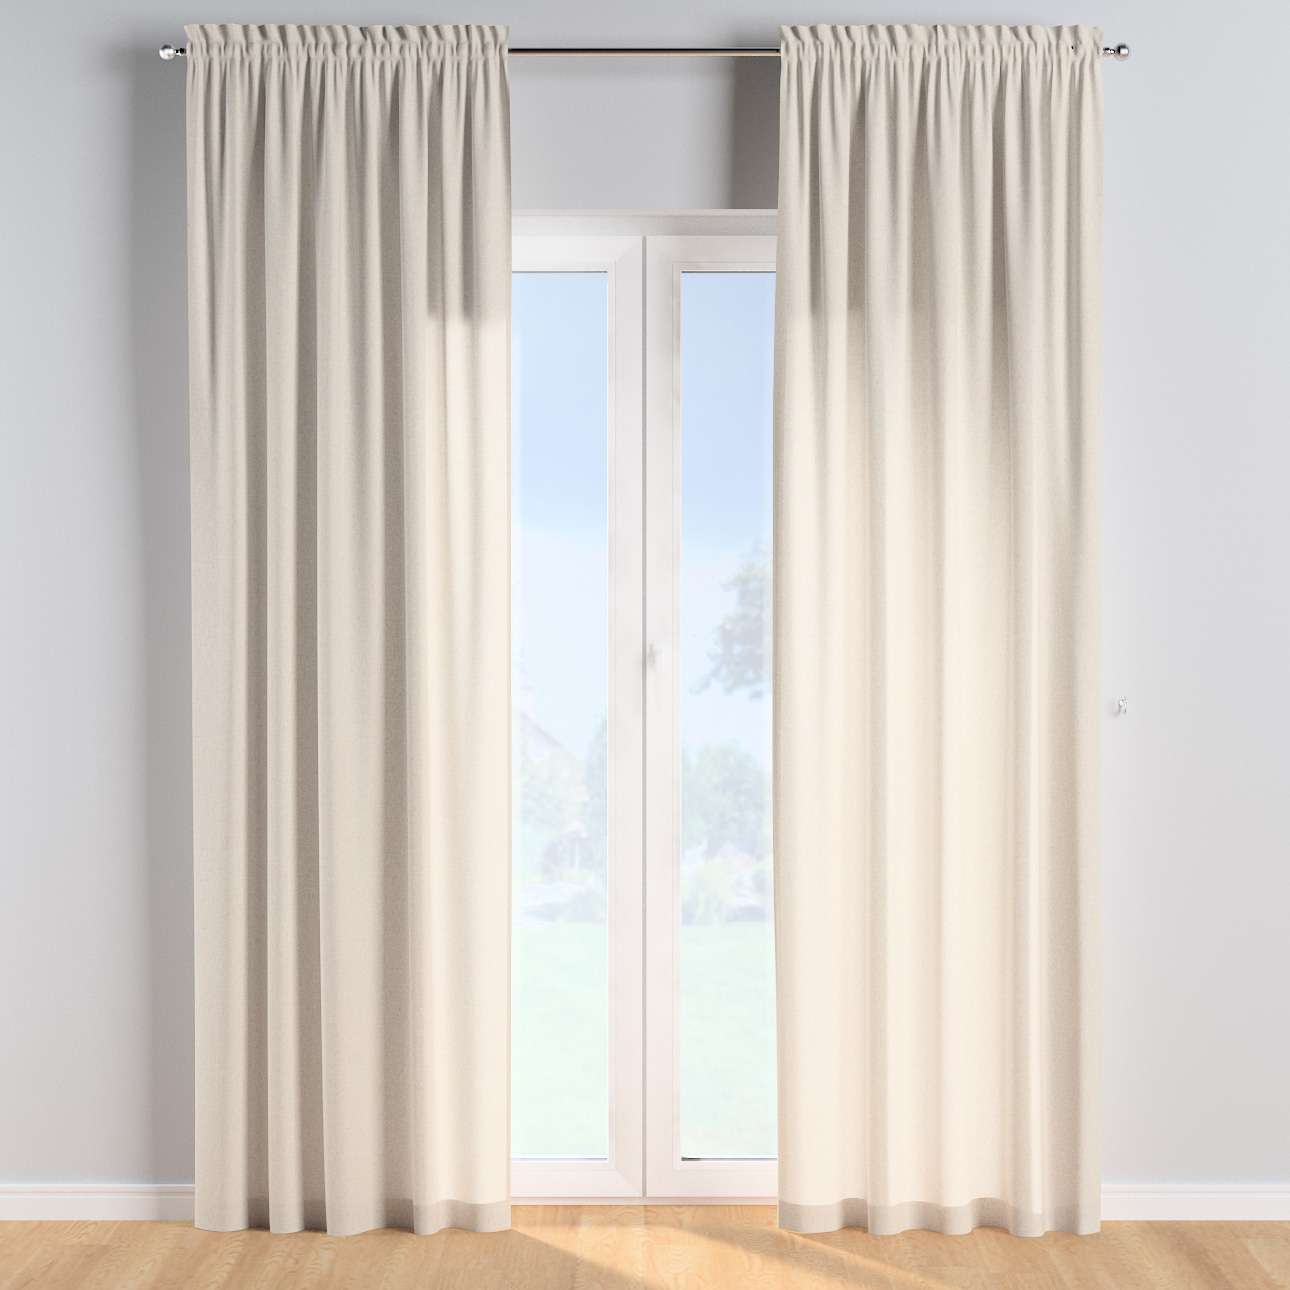 Slot and frill curtains in collection Happiness, fabric: 133-65